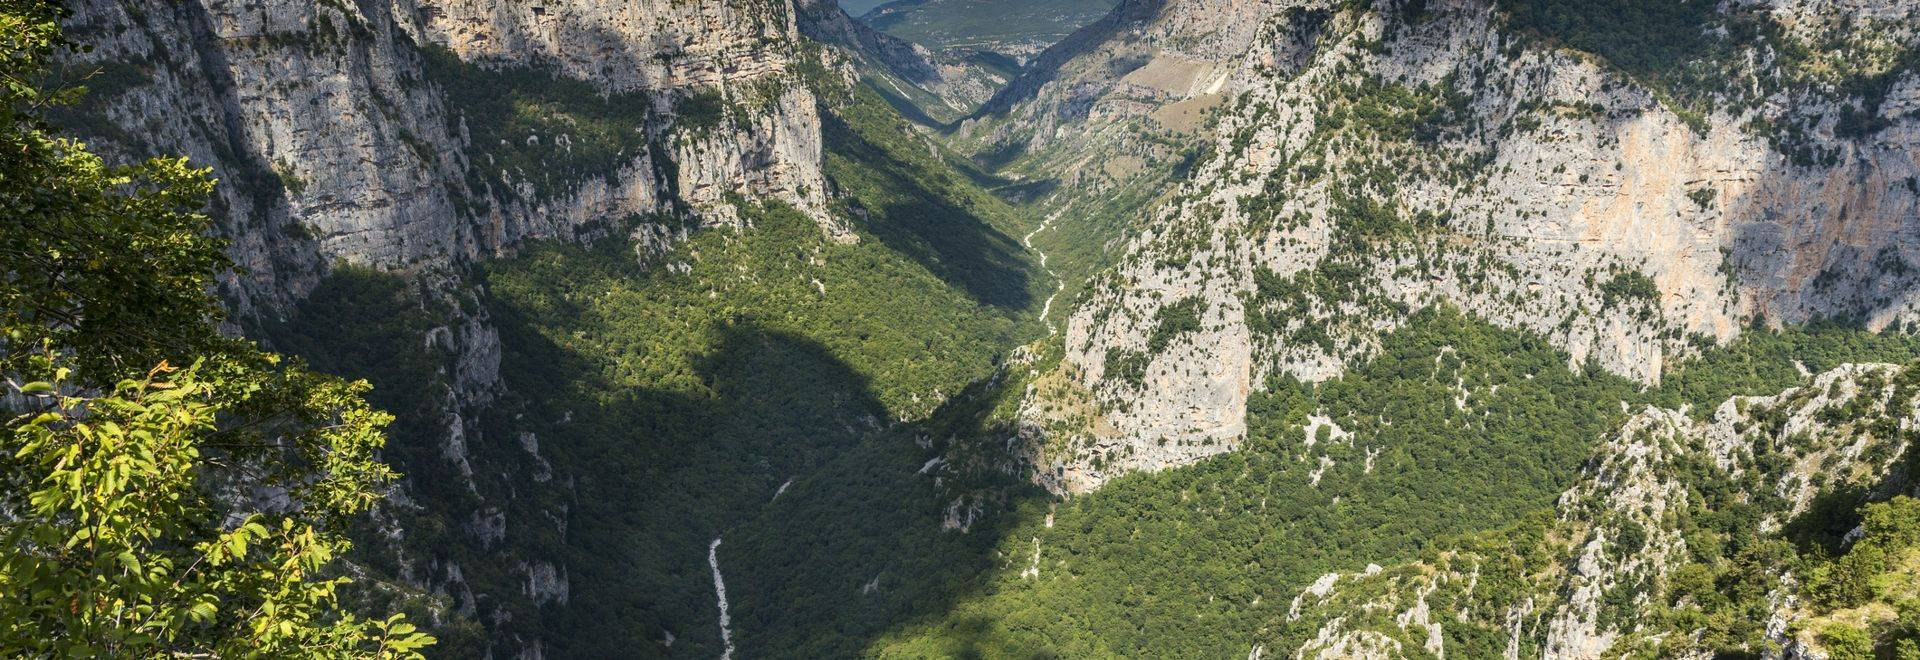 Located in Zagoria, Vikos Gorge is a popular site for hiking.